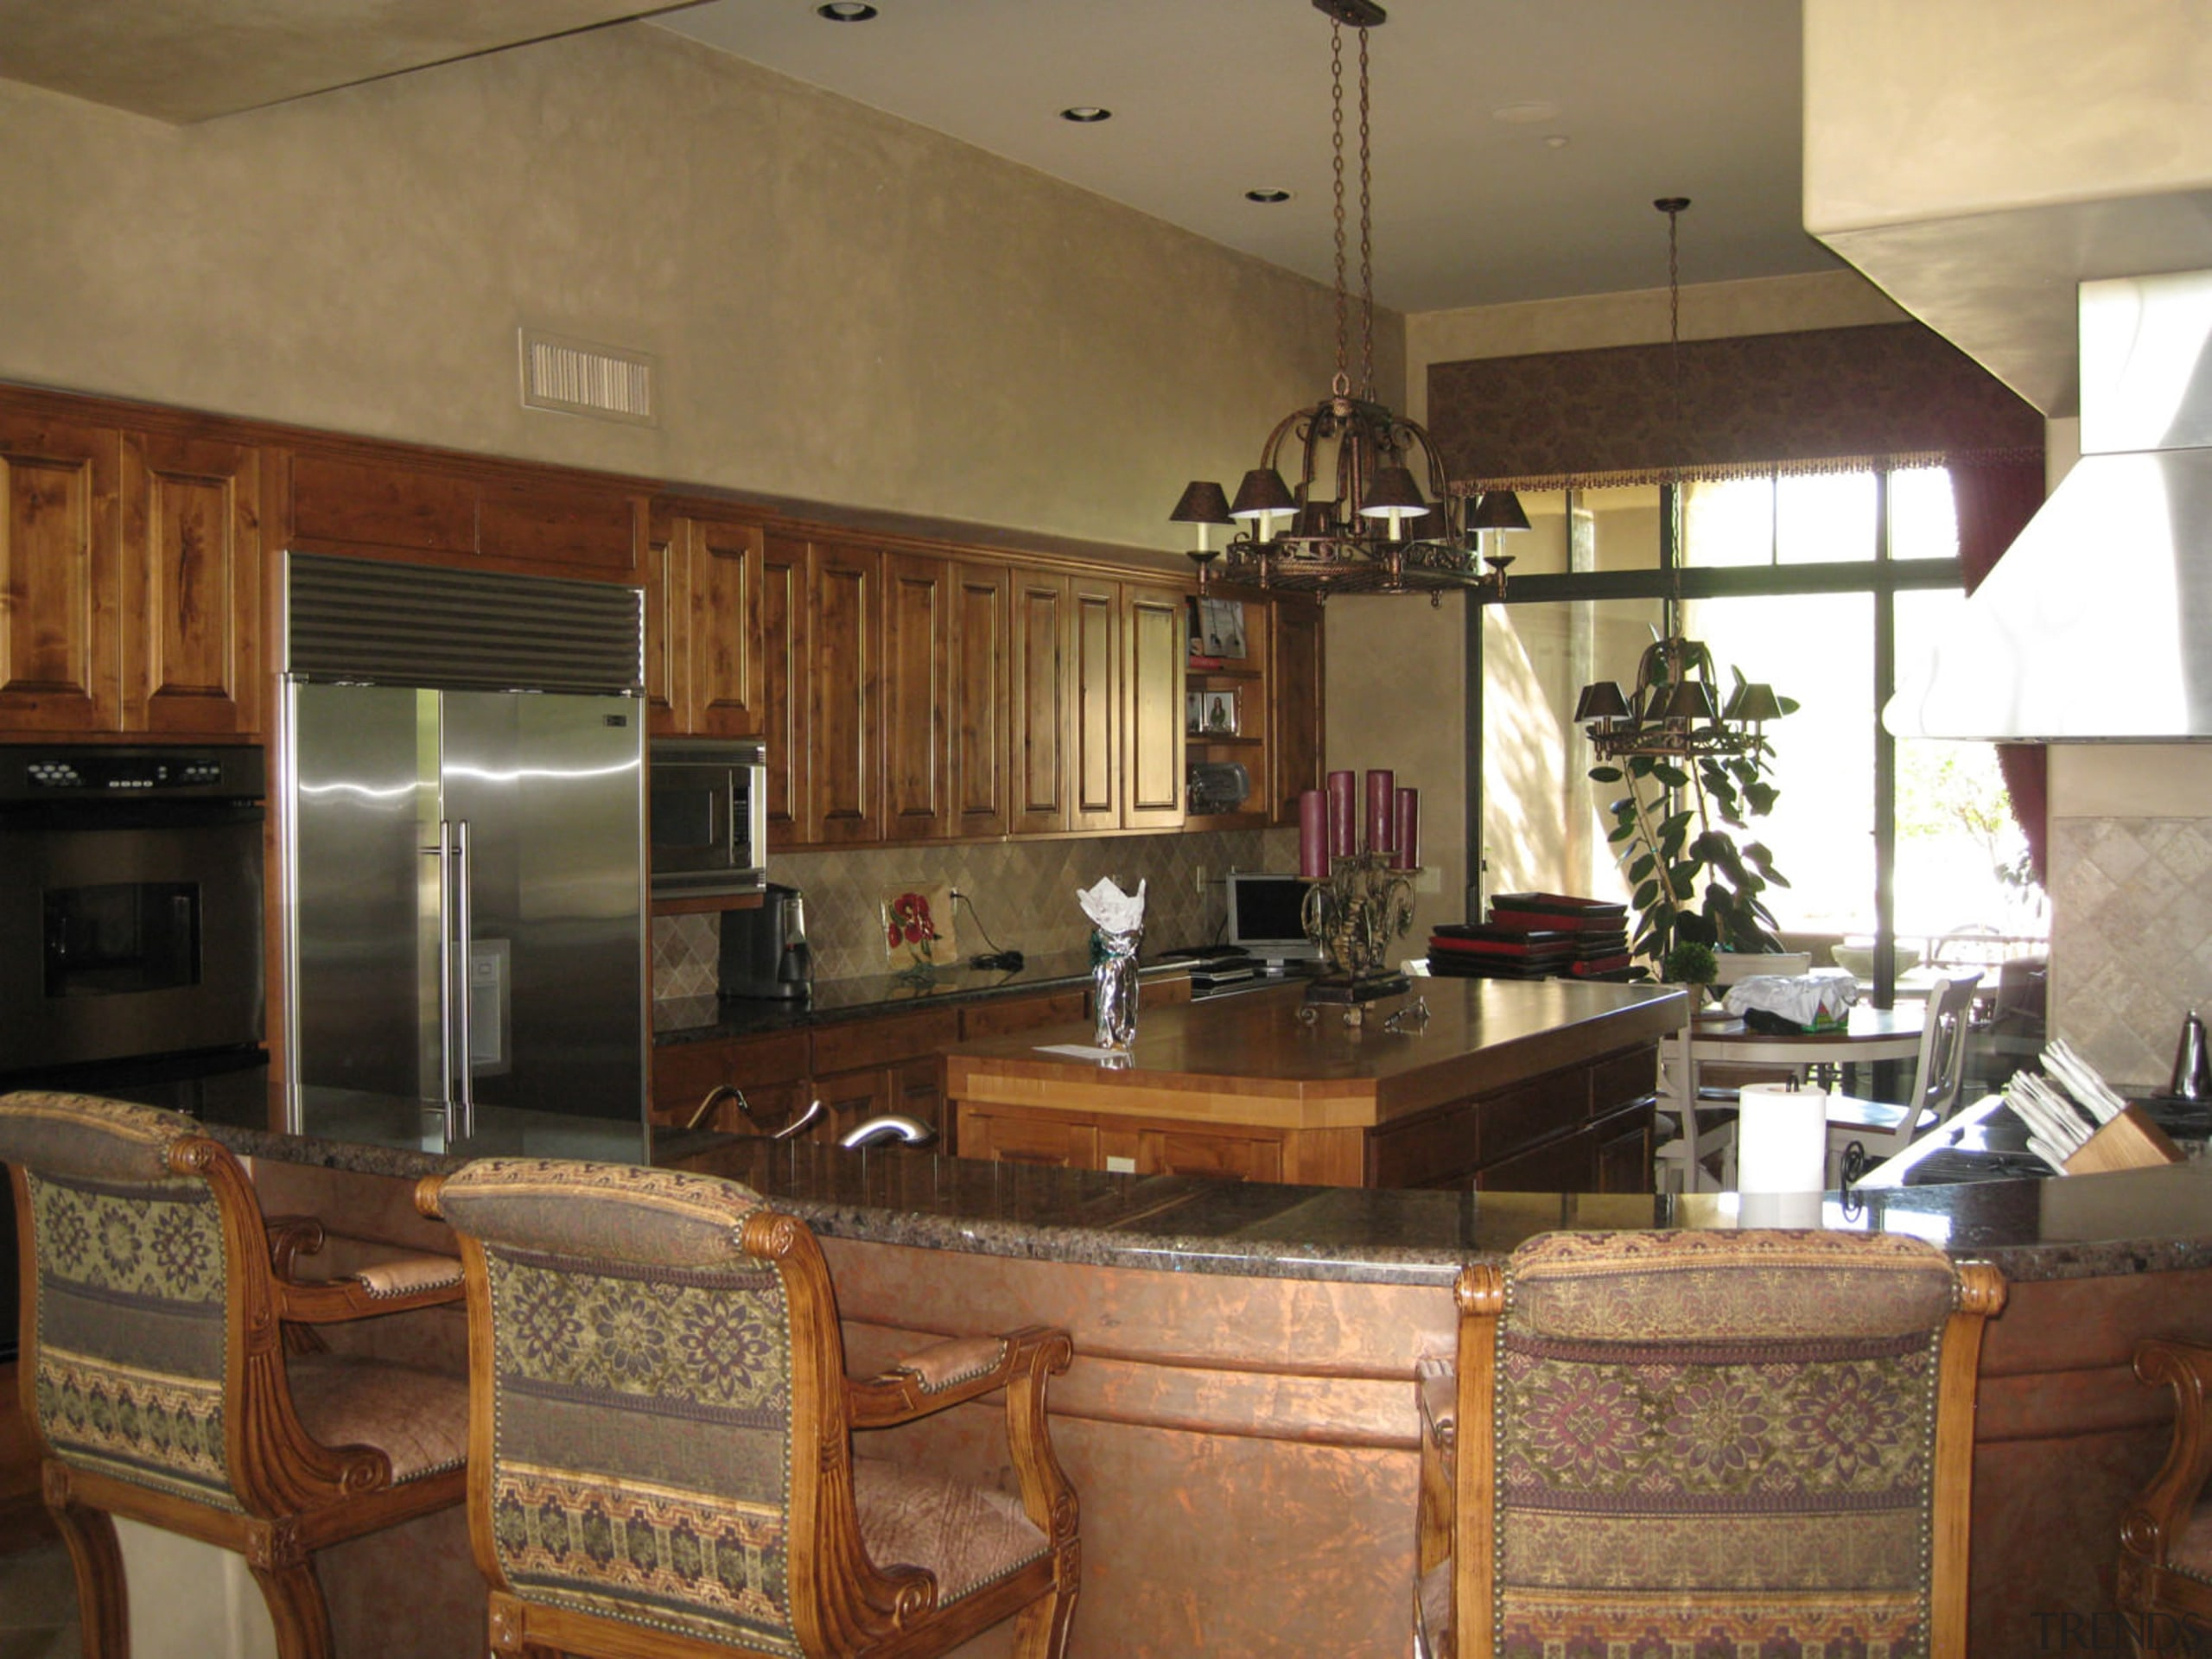 Dated wood cabinets and a brown colour scheme countertop, interior design, kitchen, living room, real estate, room, brown